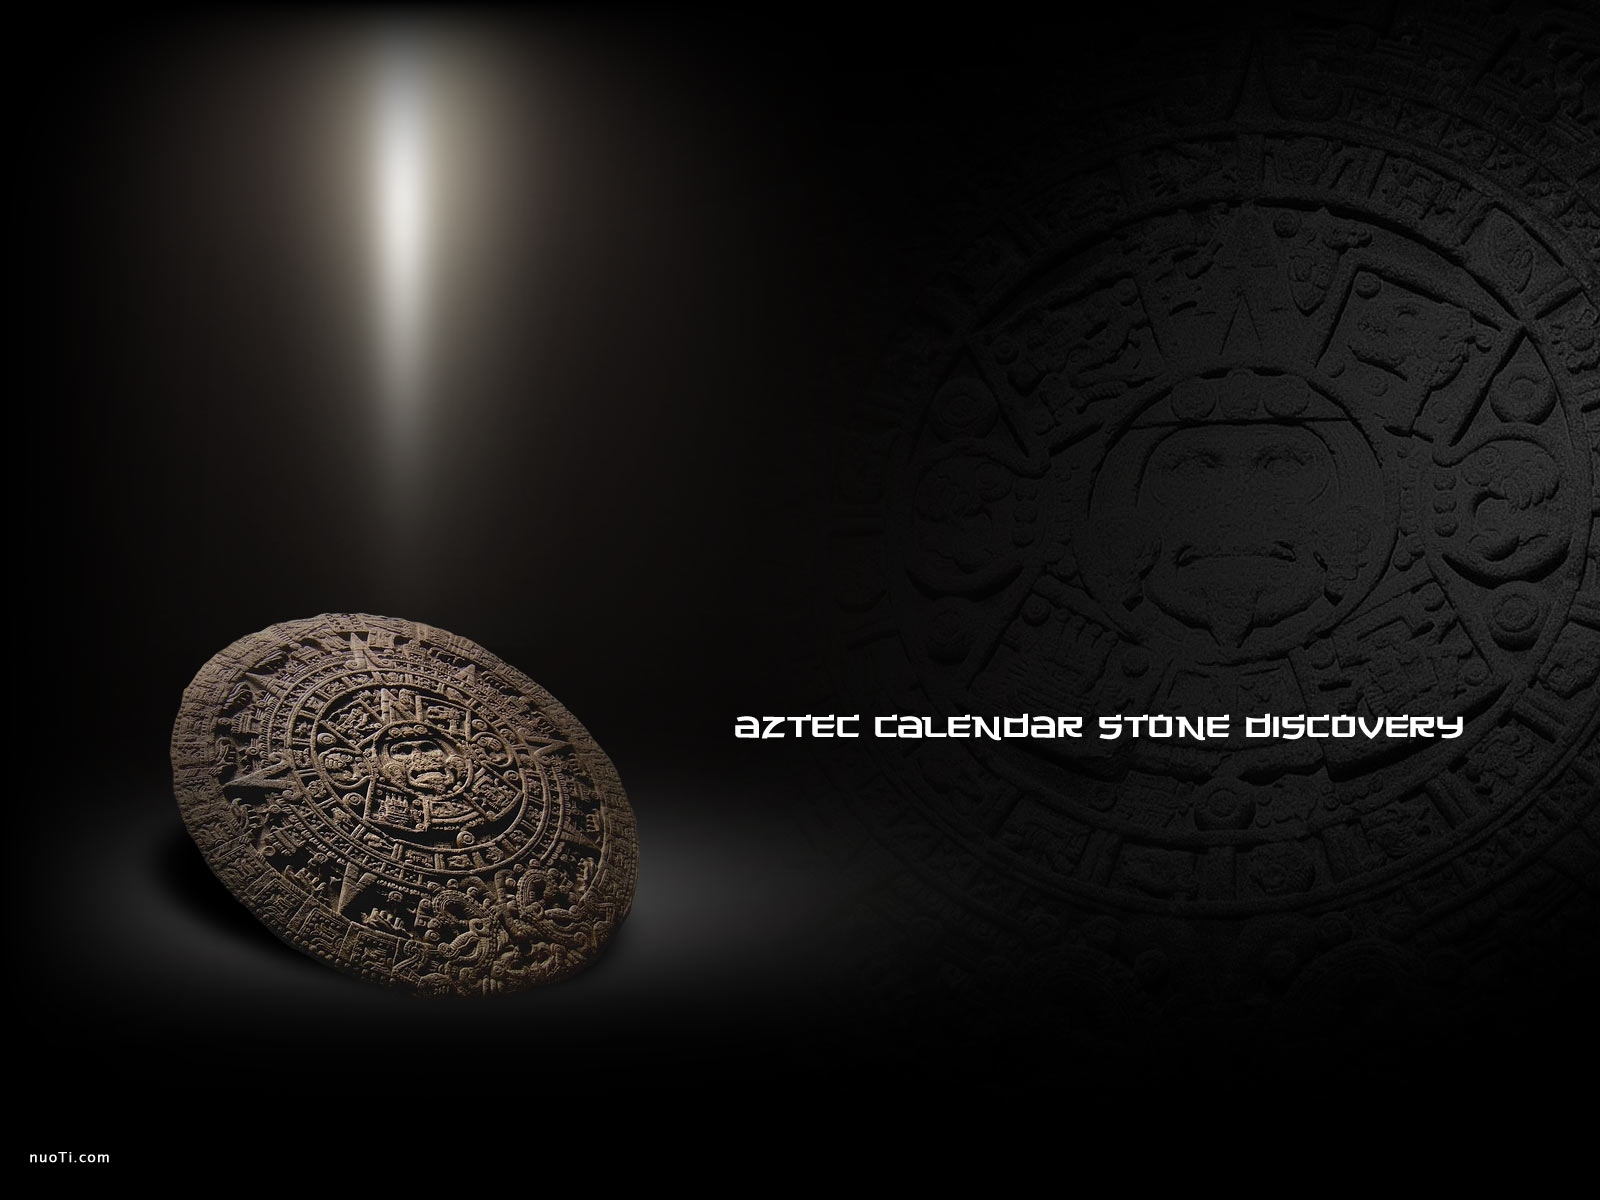 Aztec calendar stone discovery nuoti history wallpaper theme or powerpoint background template this stone art picture toneelgroepblik Gallery